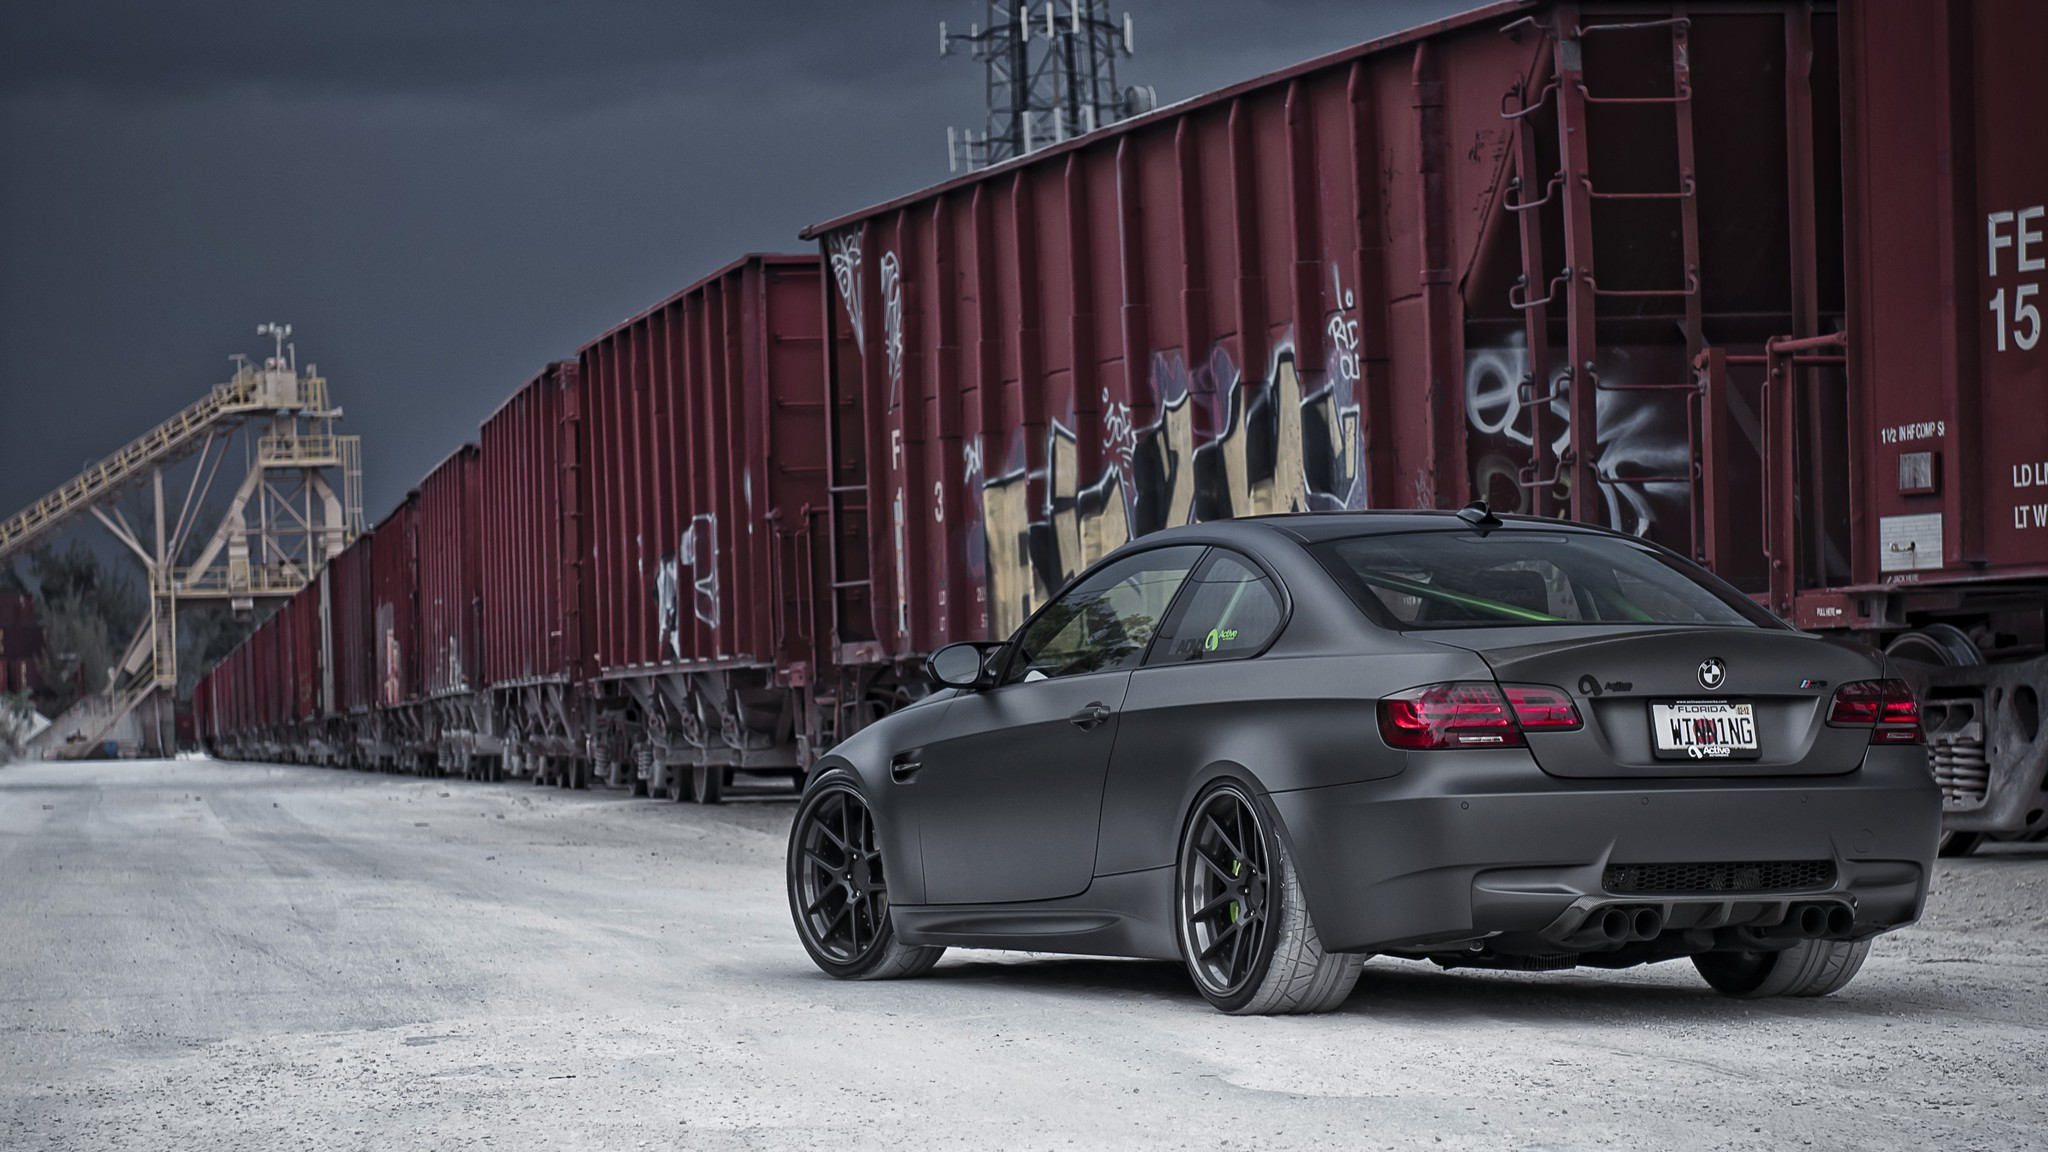 Bmw e92 m3 cars matte wallpaper | AllWallpaper.in #1000 | PC | en